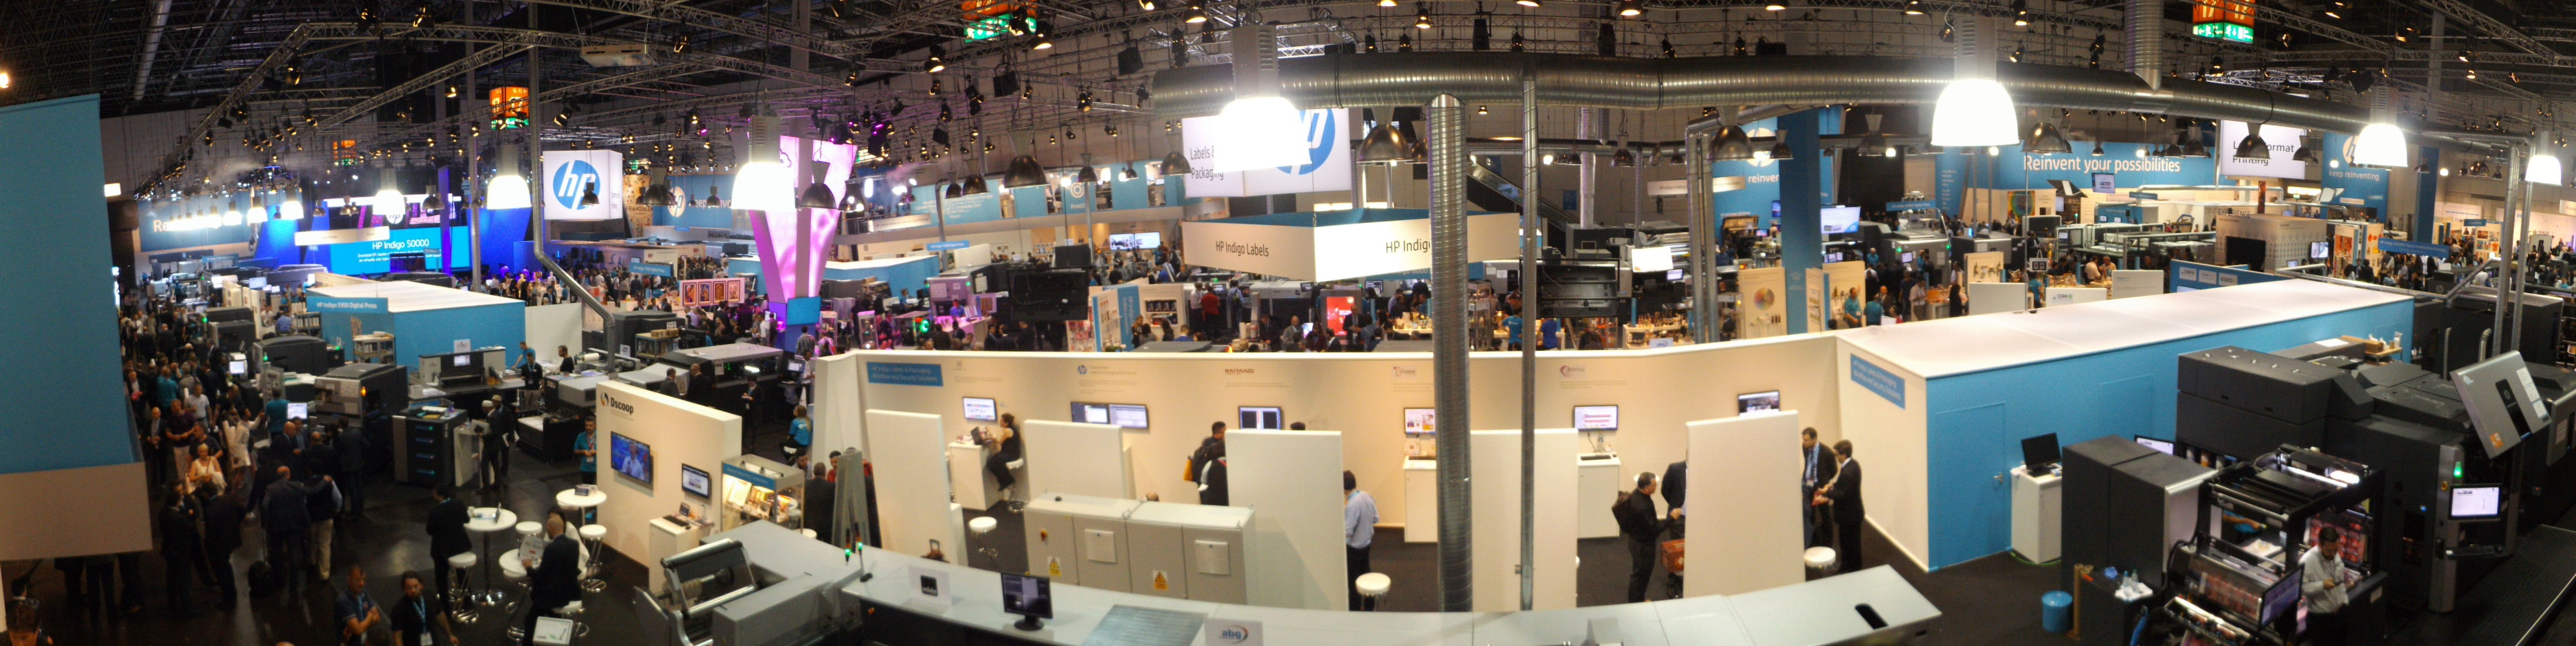 HP's exhibit at drupa 2016 took up an entire Hall and was the biggest of the show